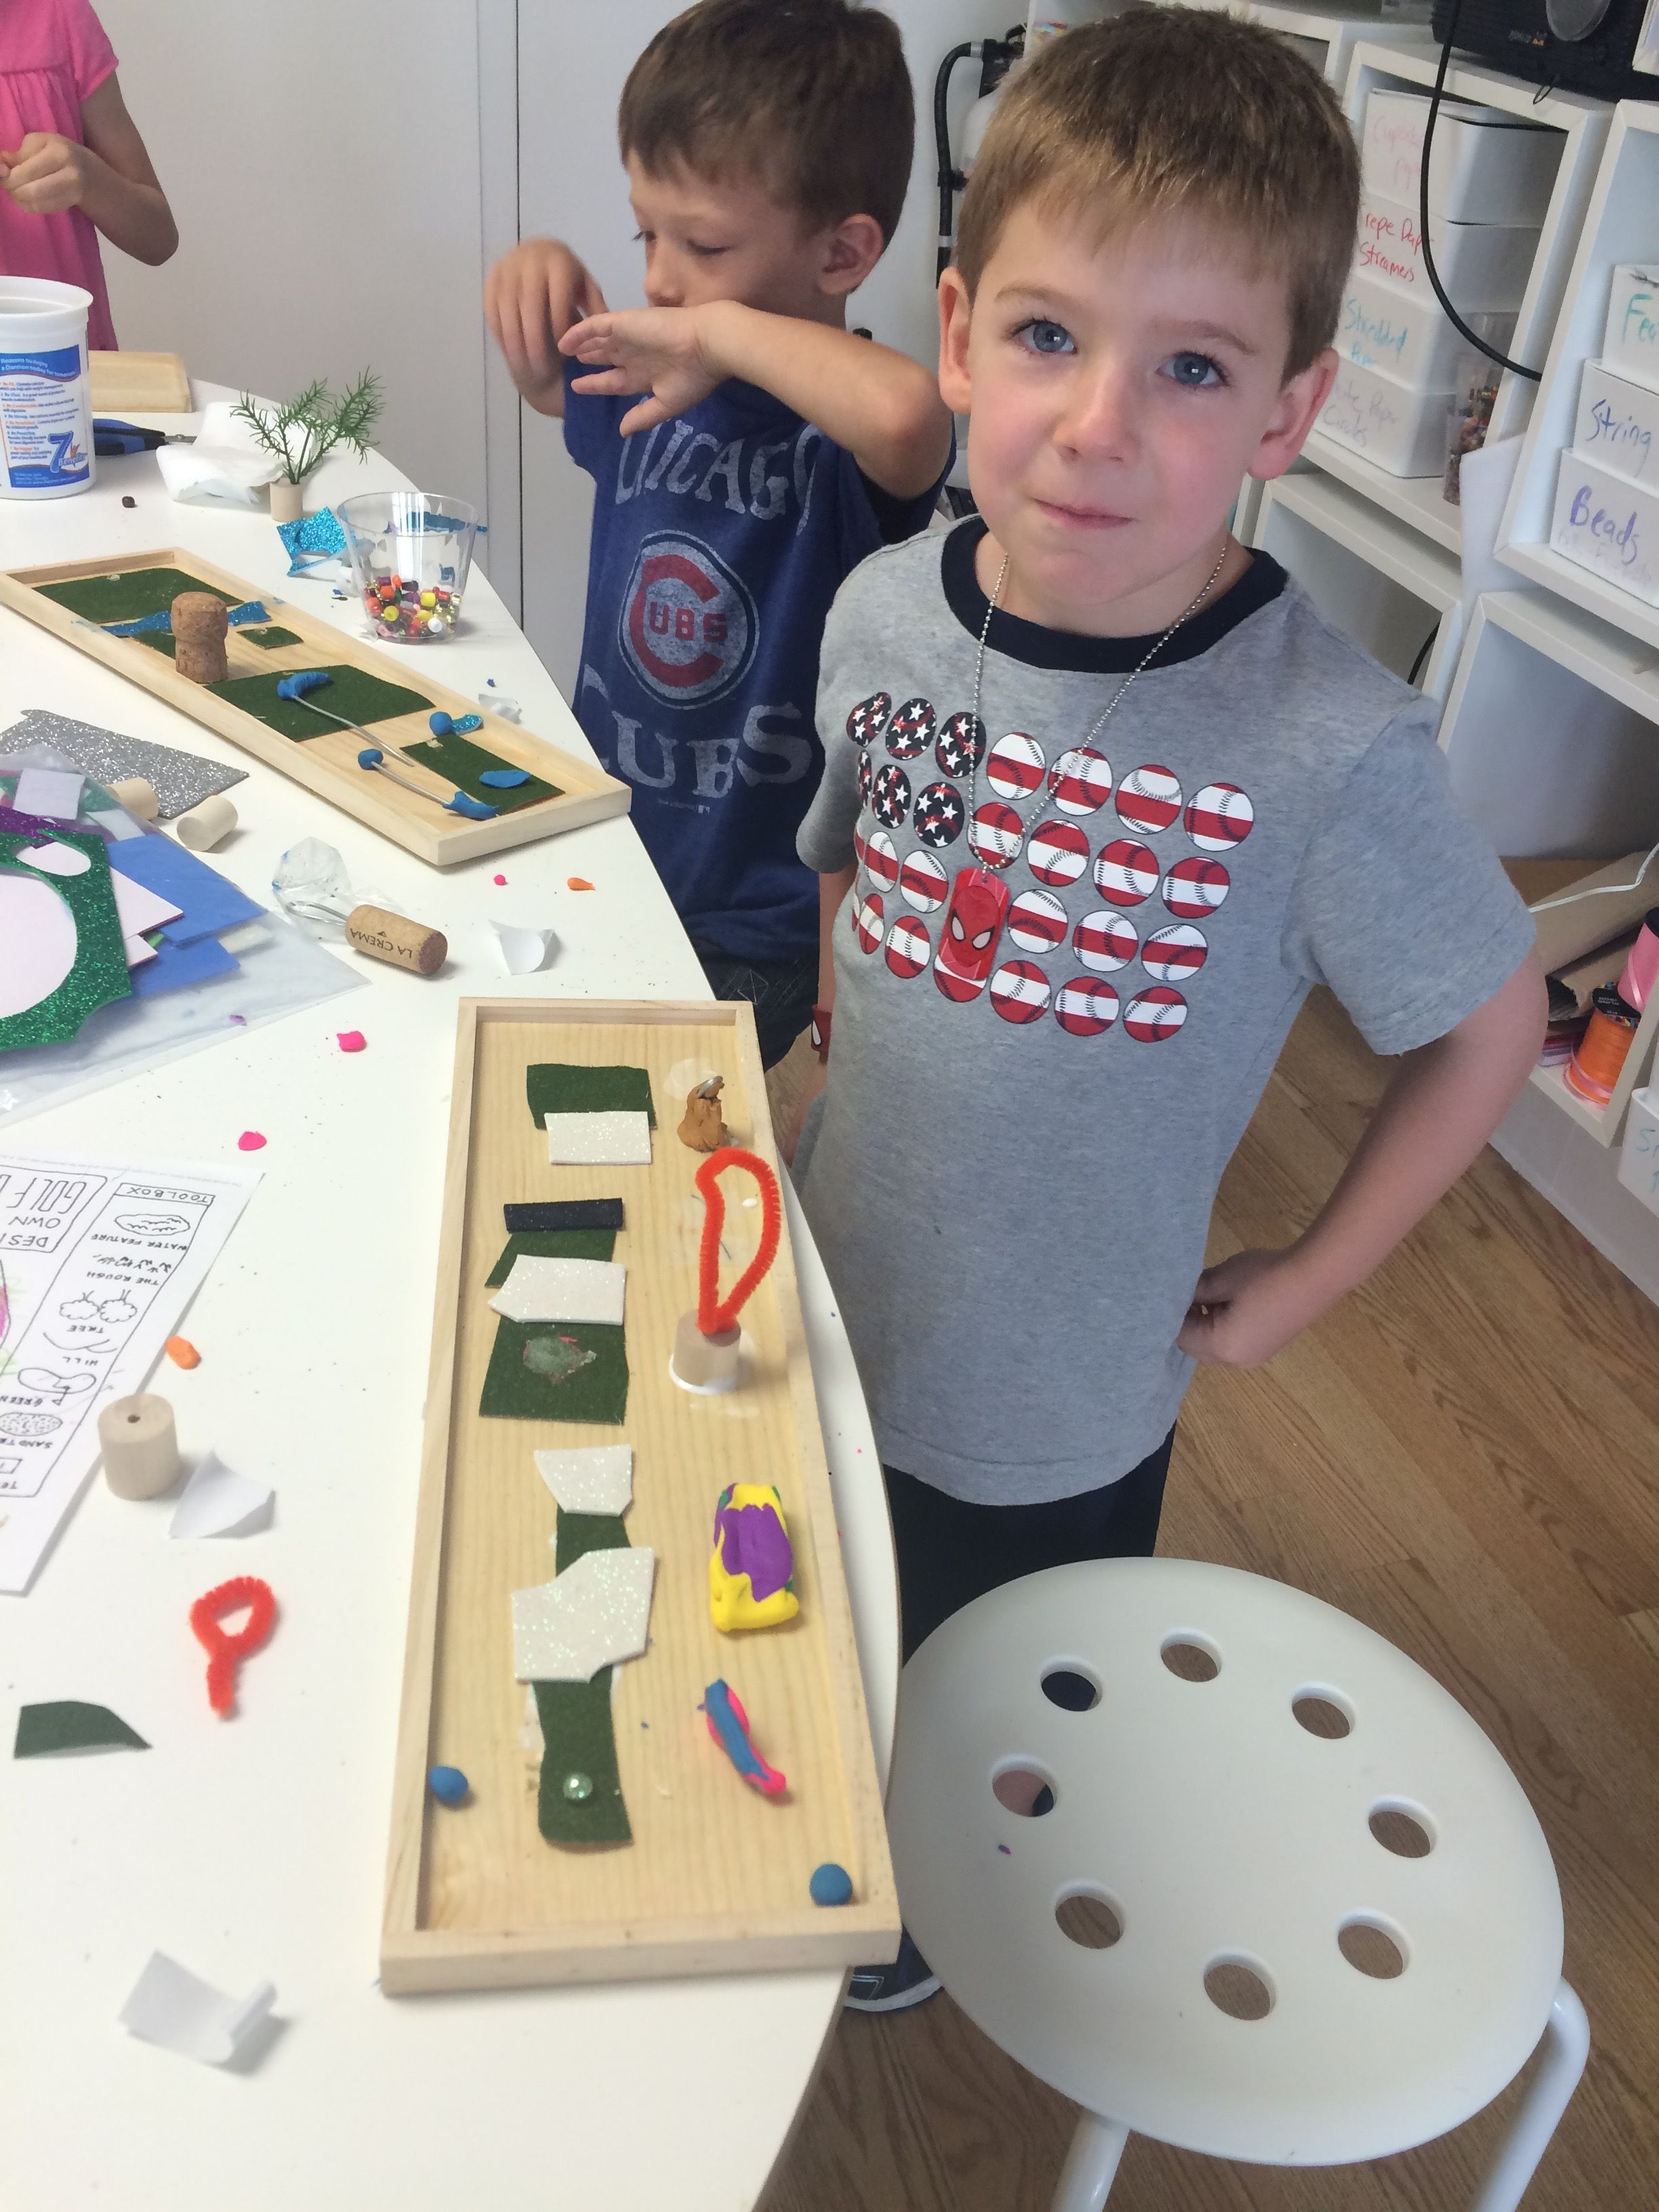 Making mini golf courses with a shadow box, green turf